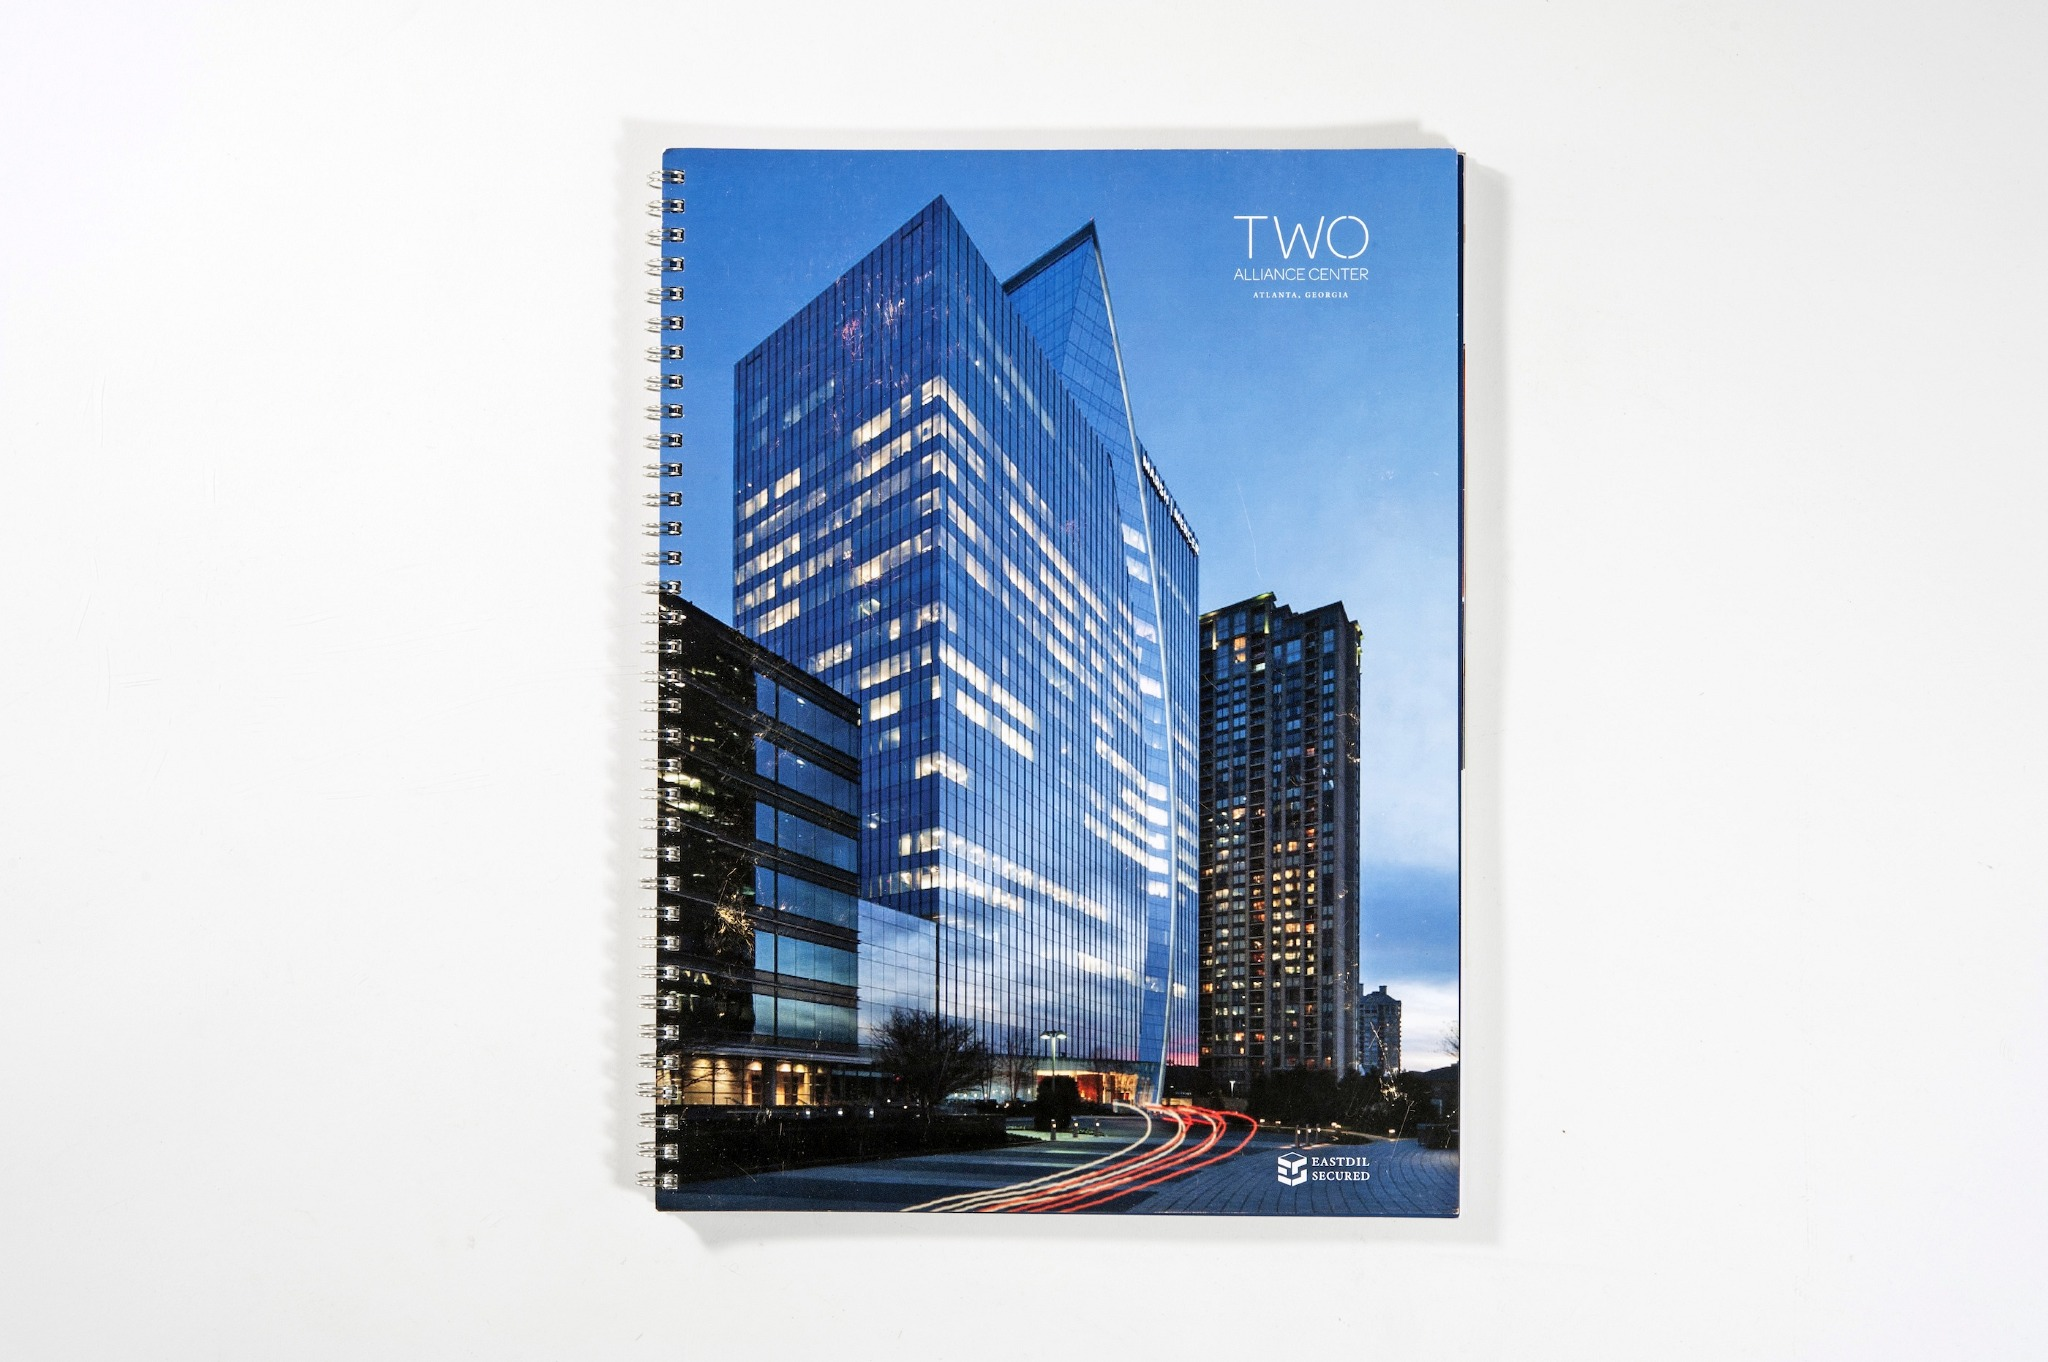 two alliance center real estate branding where big ideas come first